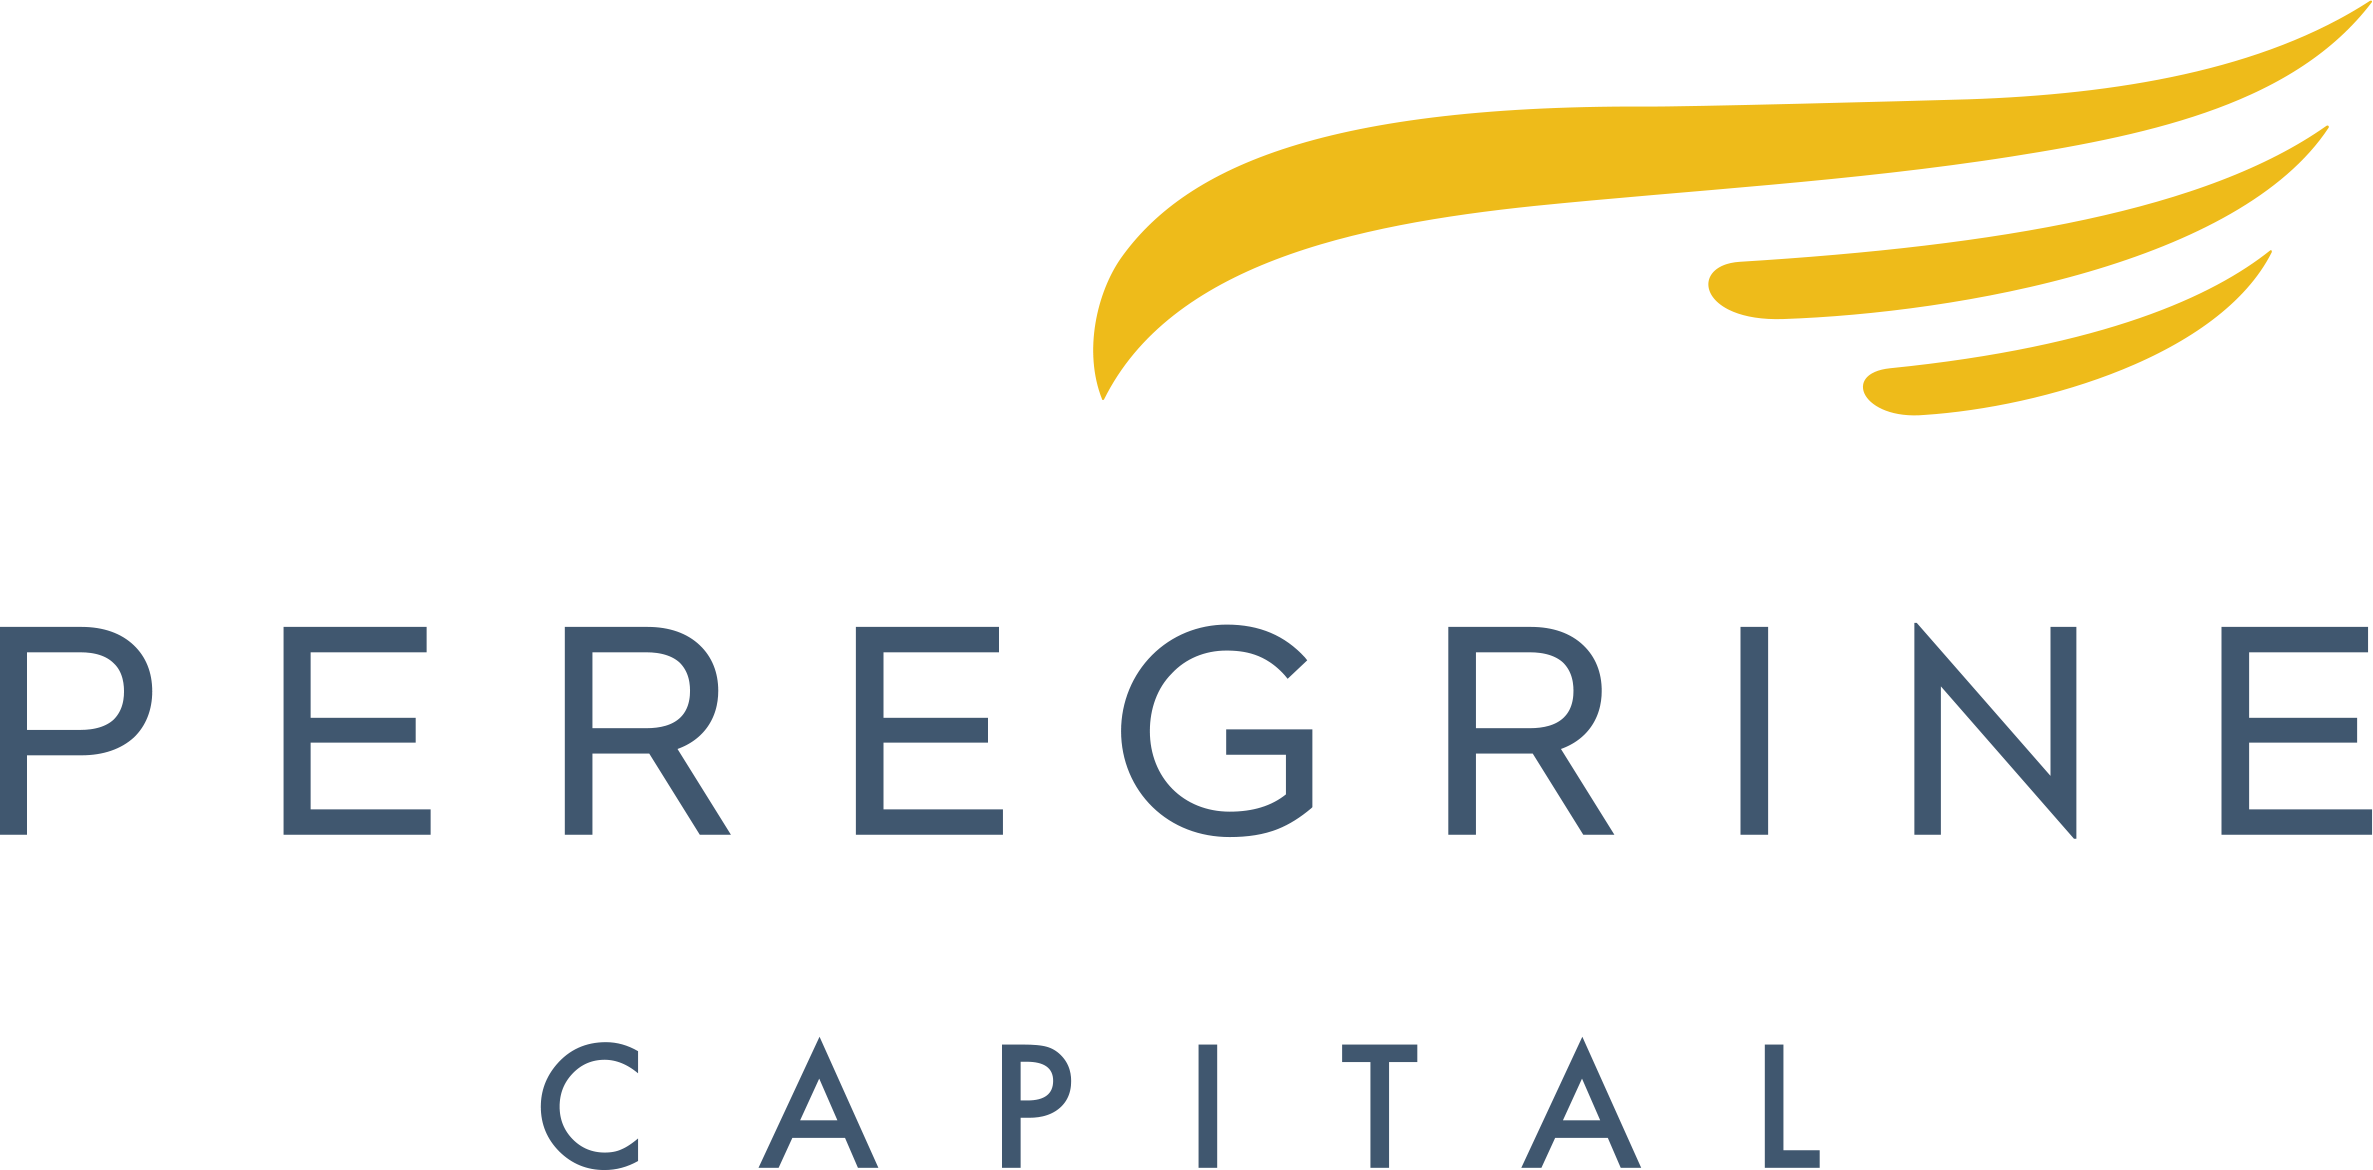 Peregrine Capital